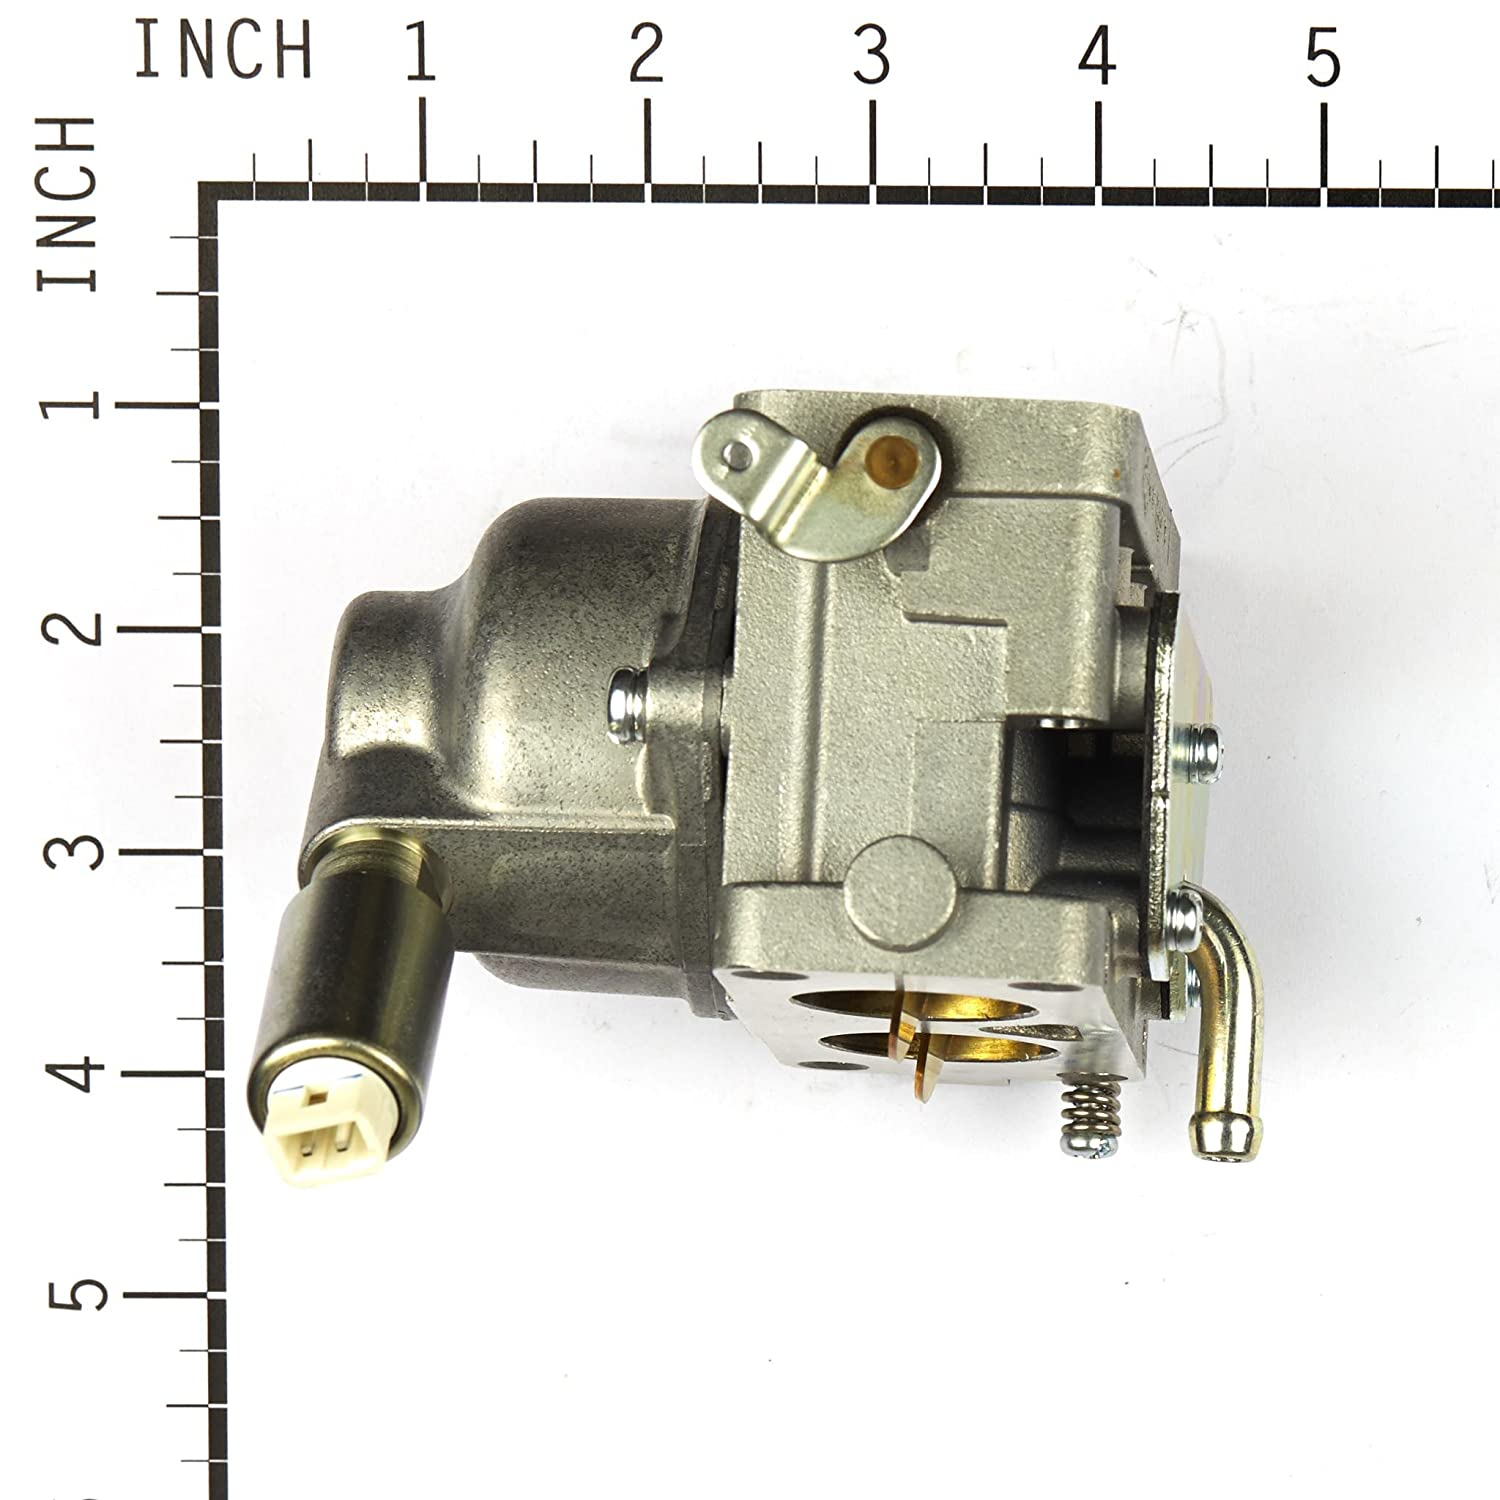 Briggs Stratton 791230 Carburetor Replacement For Section Parts Diagram And List Kubota Riding Models 699709 499804 Lawn Garden Tool Outdoor